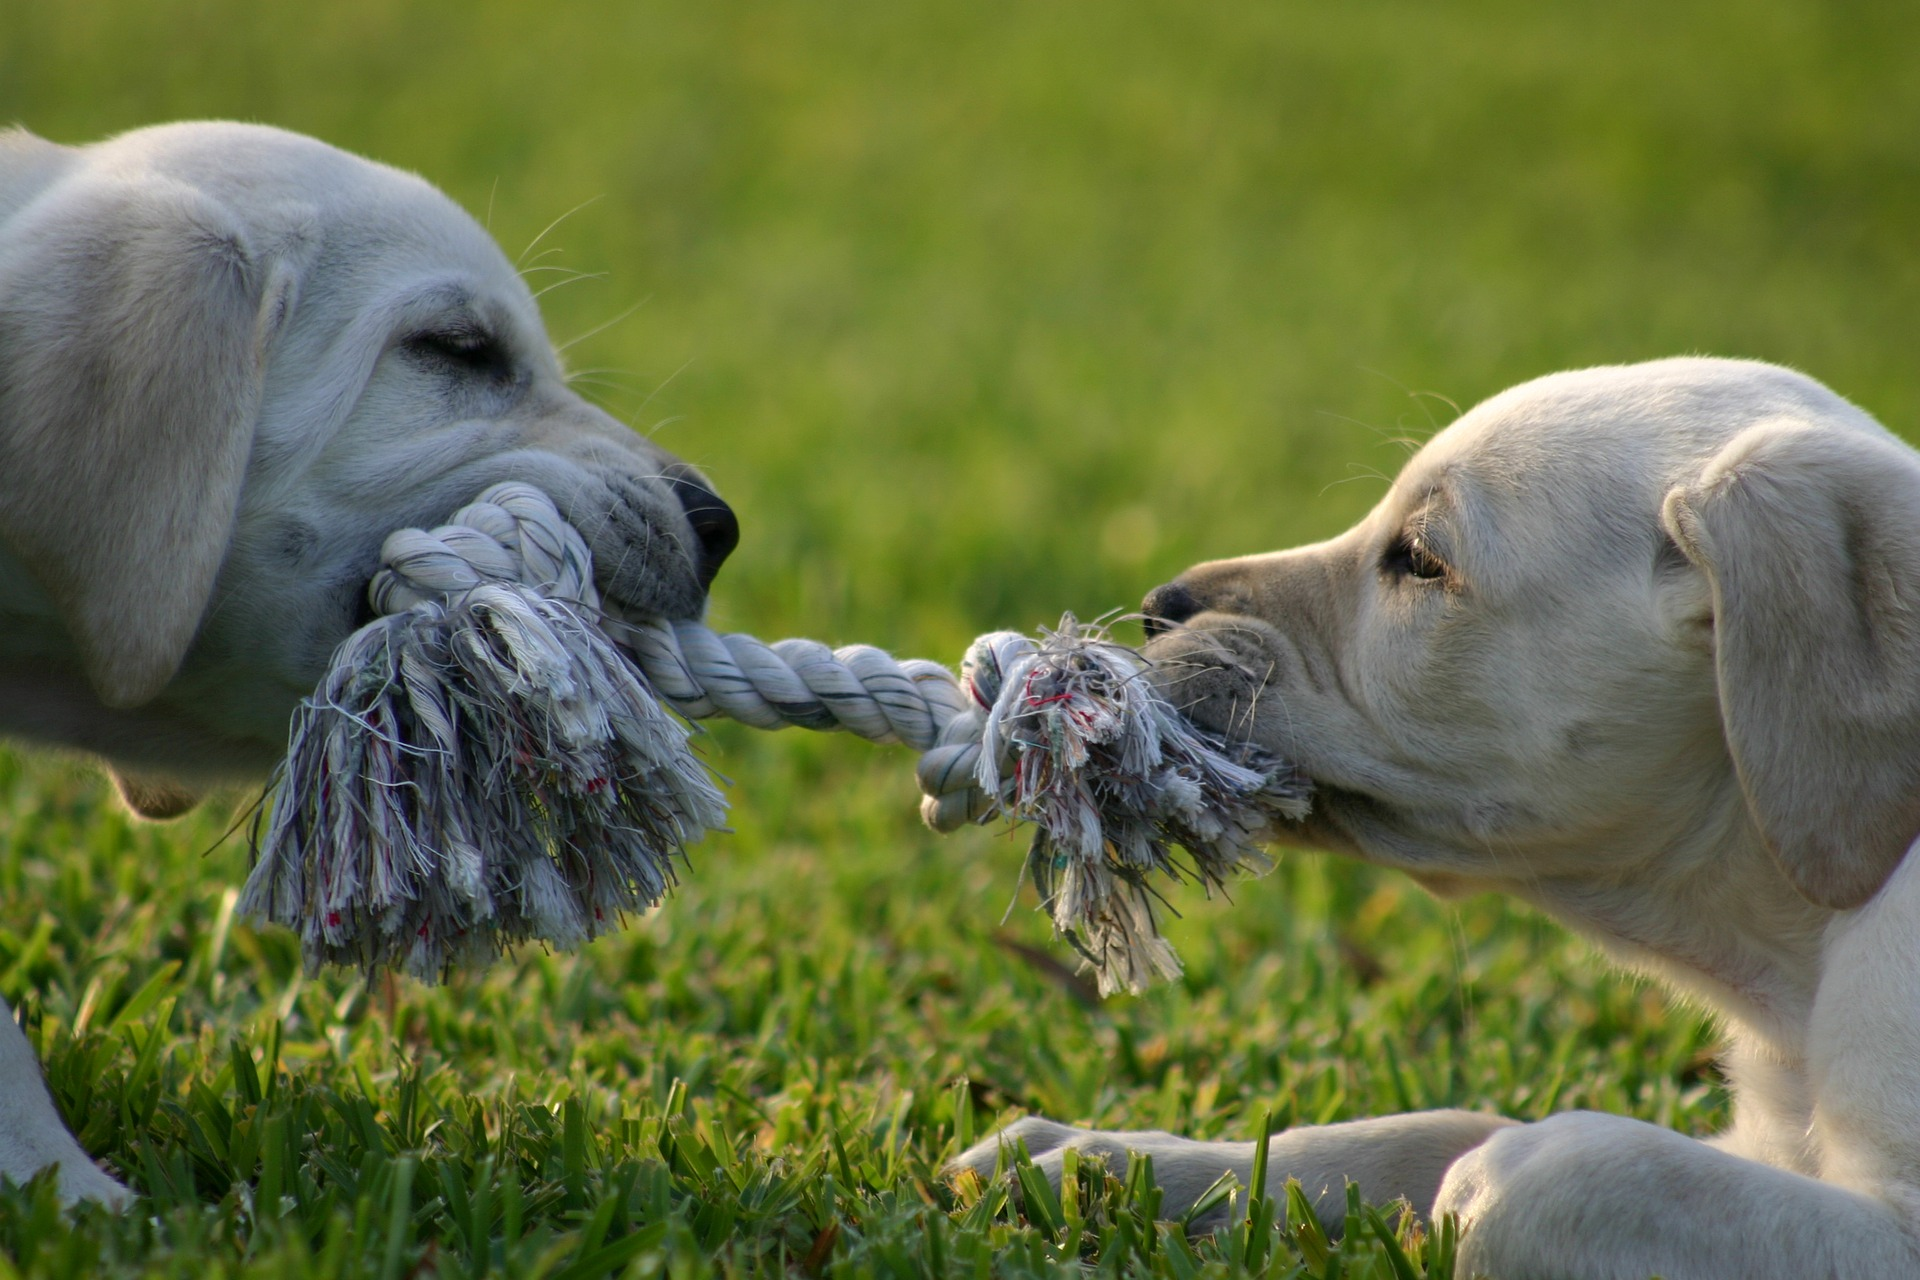 Tug of war shows differences between mediation and litigation